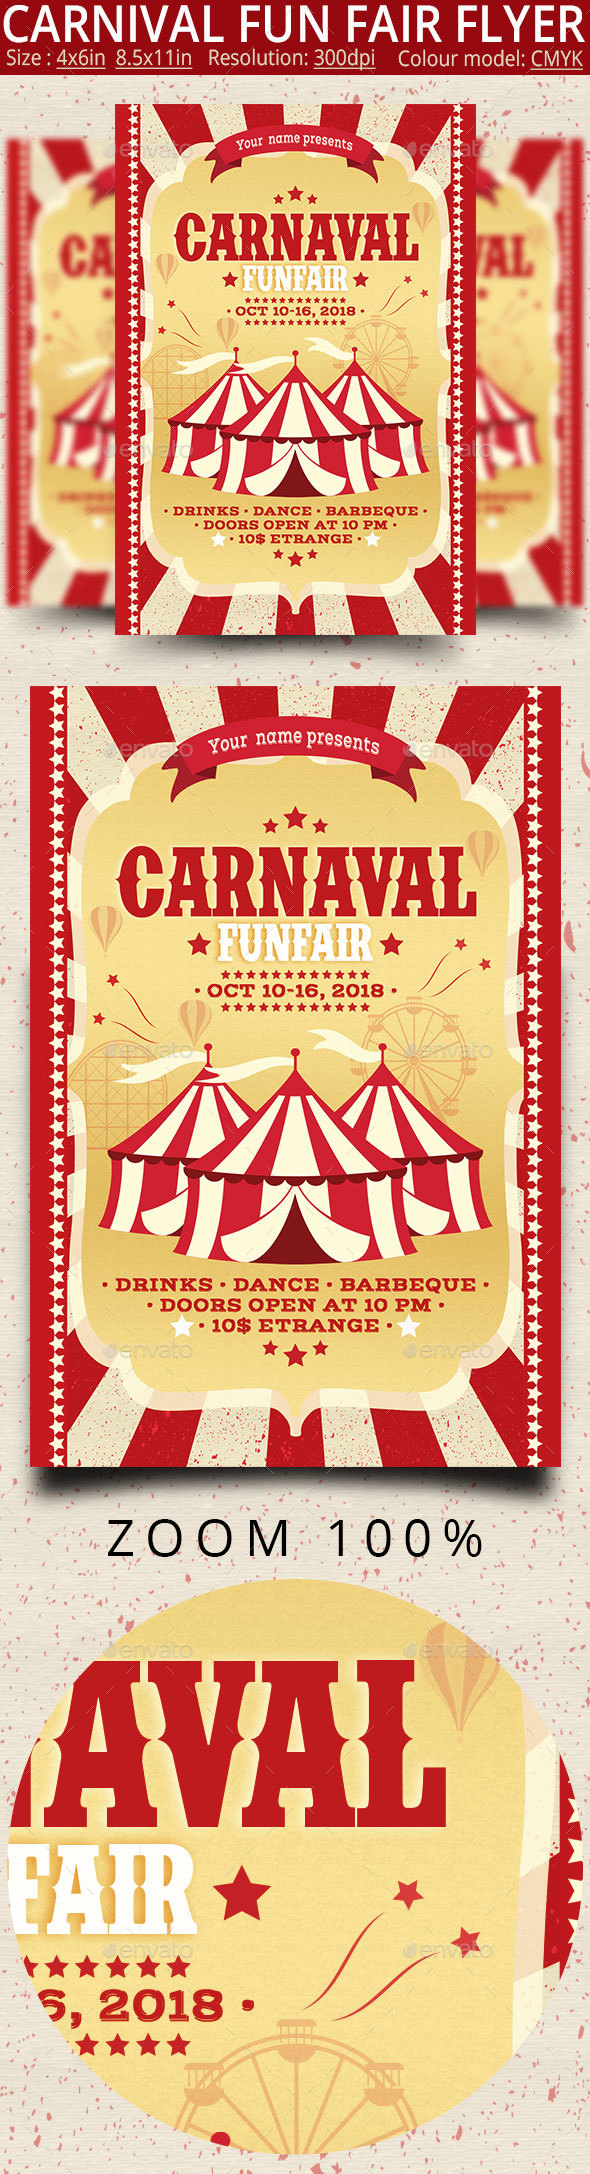 Carnival Fun Fair Flyer Poster - Events Flyers